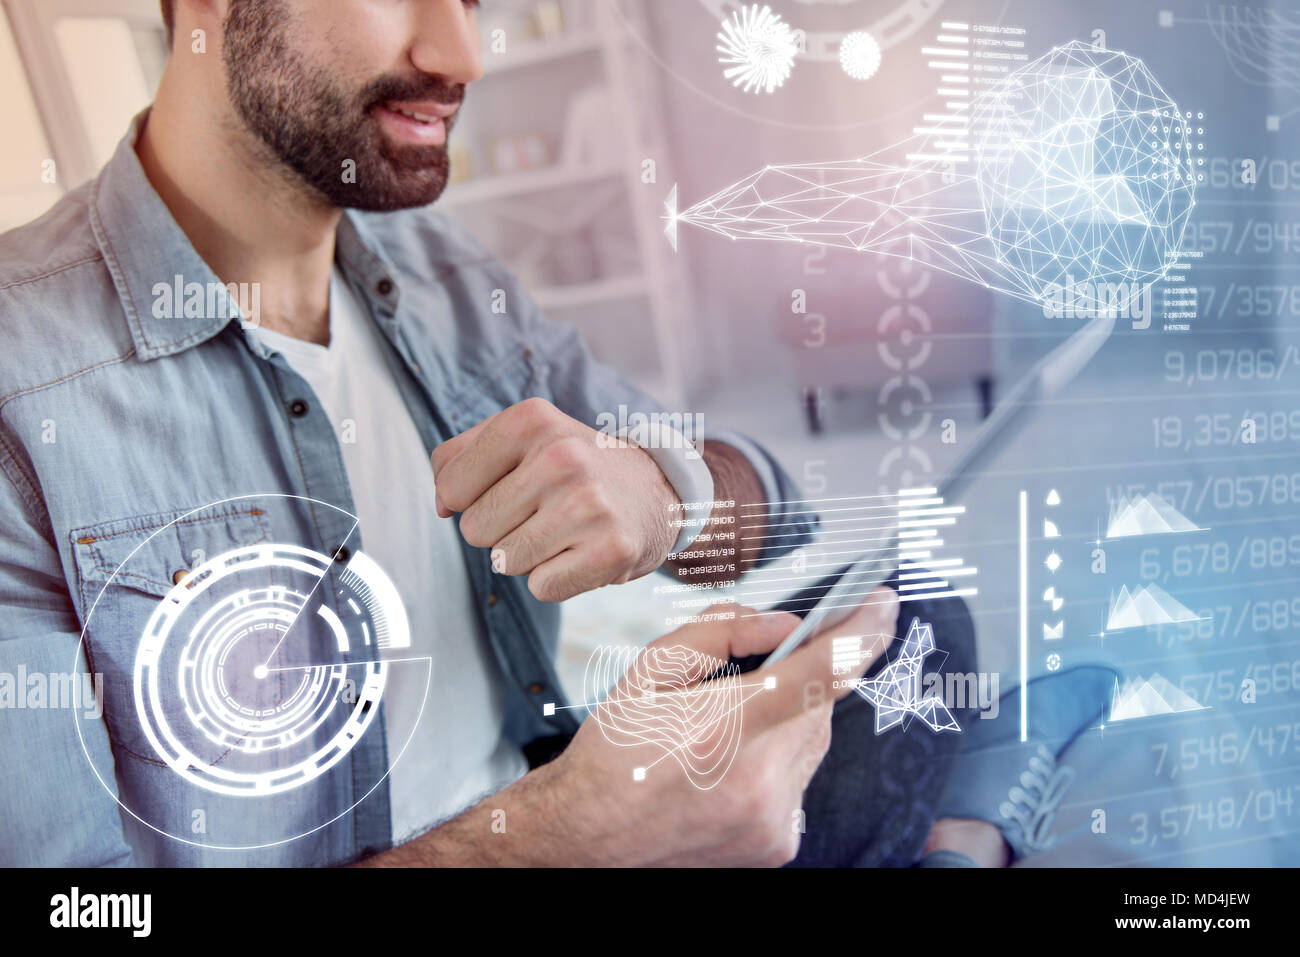 Emotional programmer holding a tablet while testing his smart watch - Stock Image